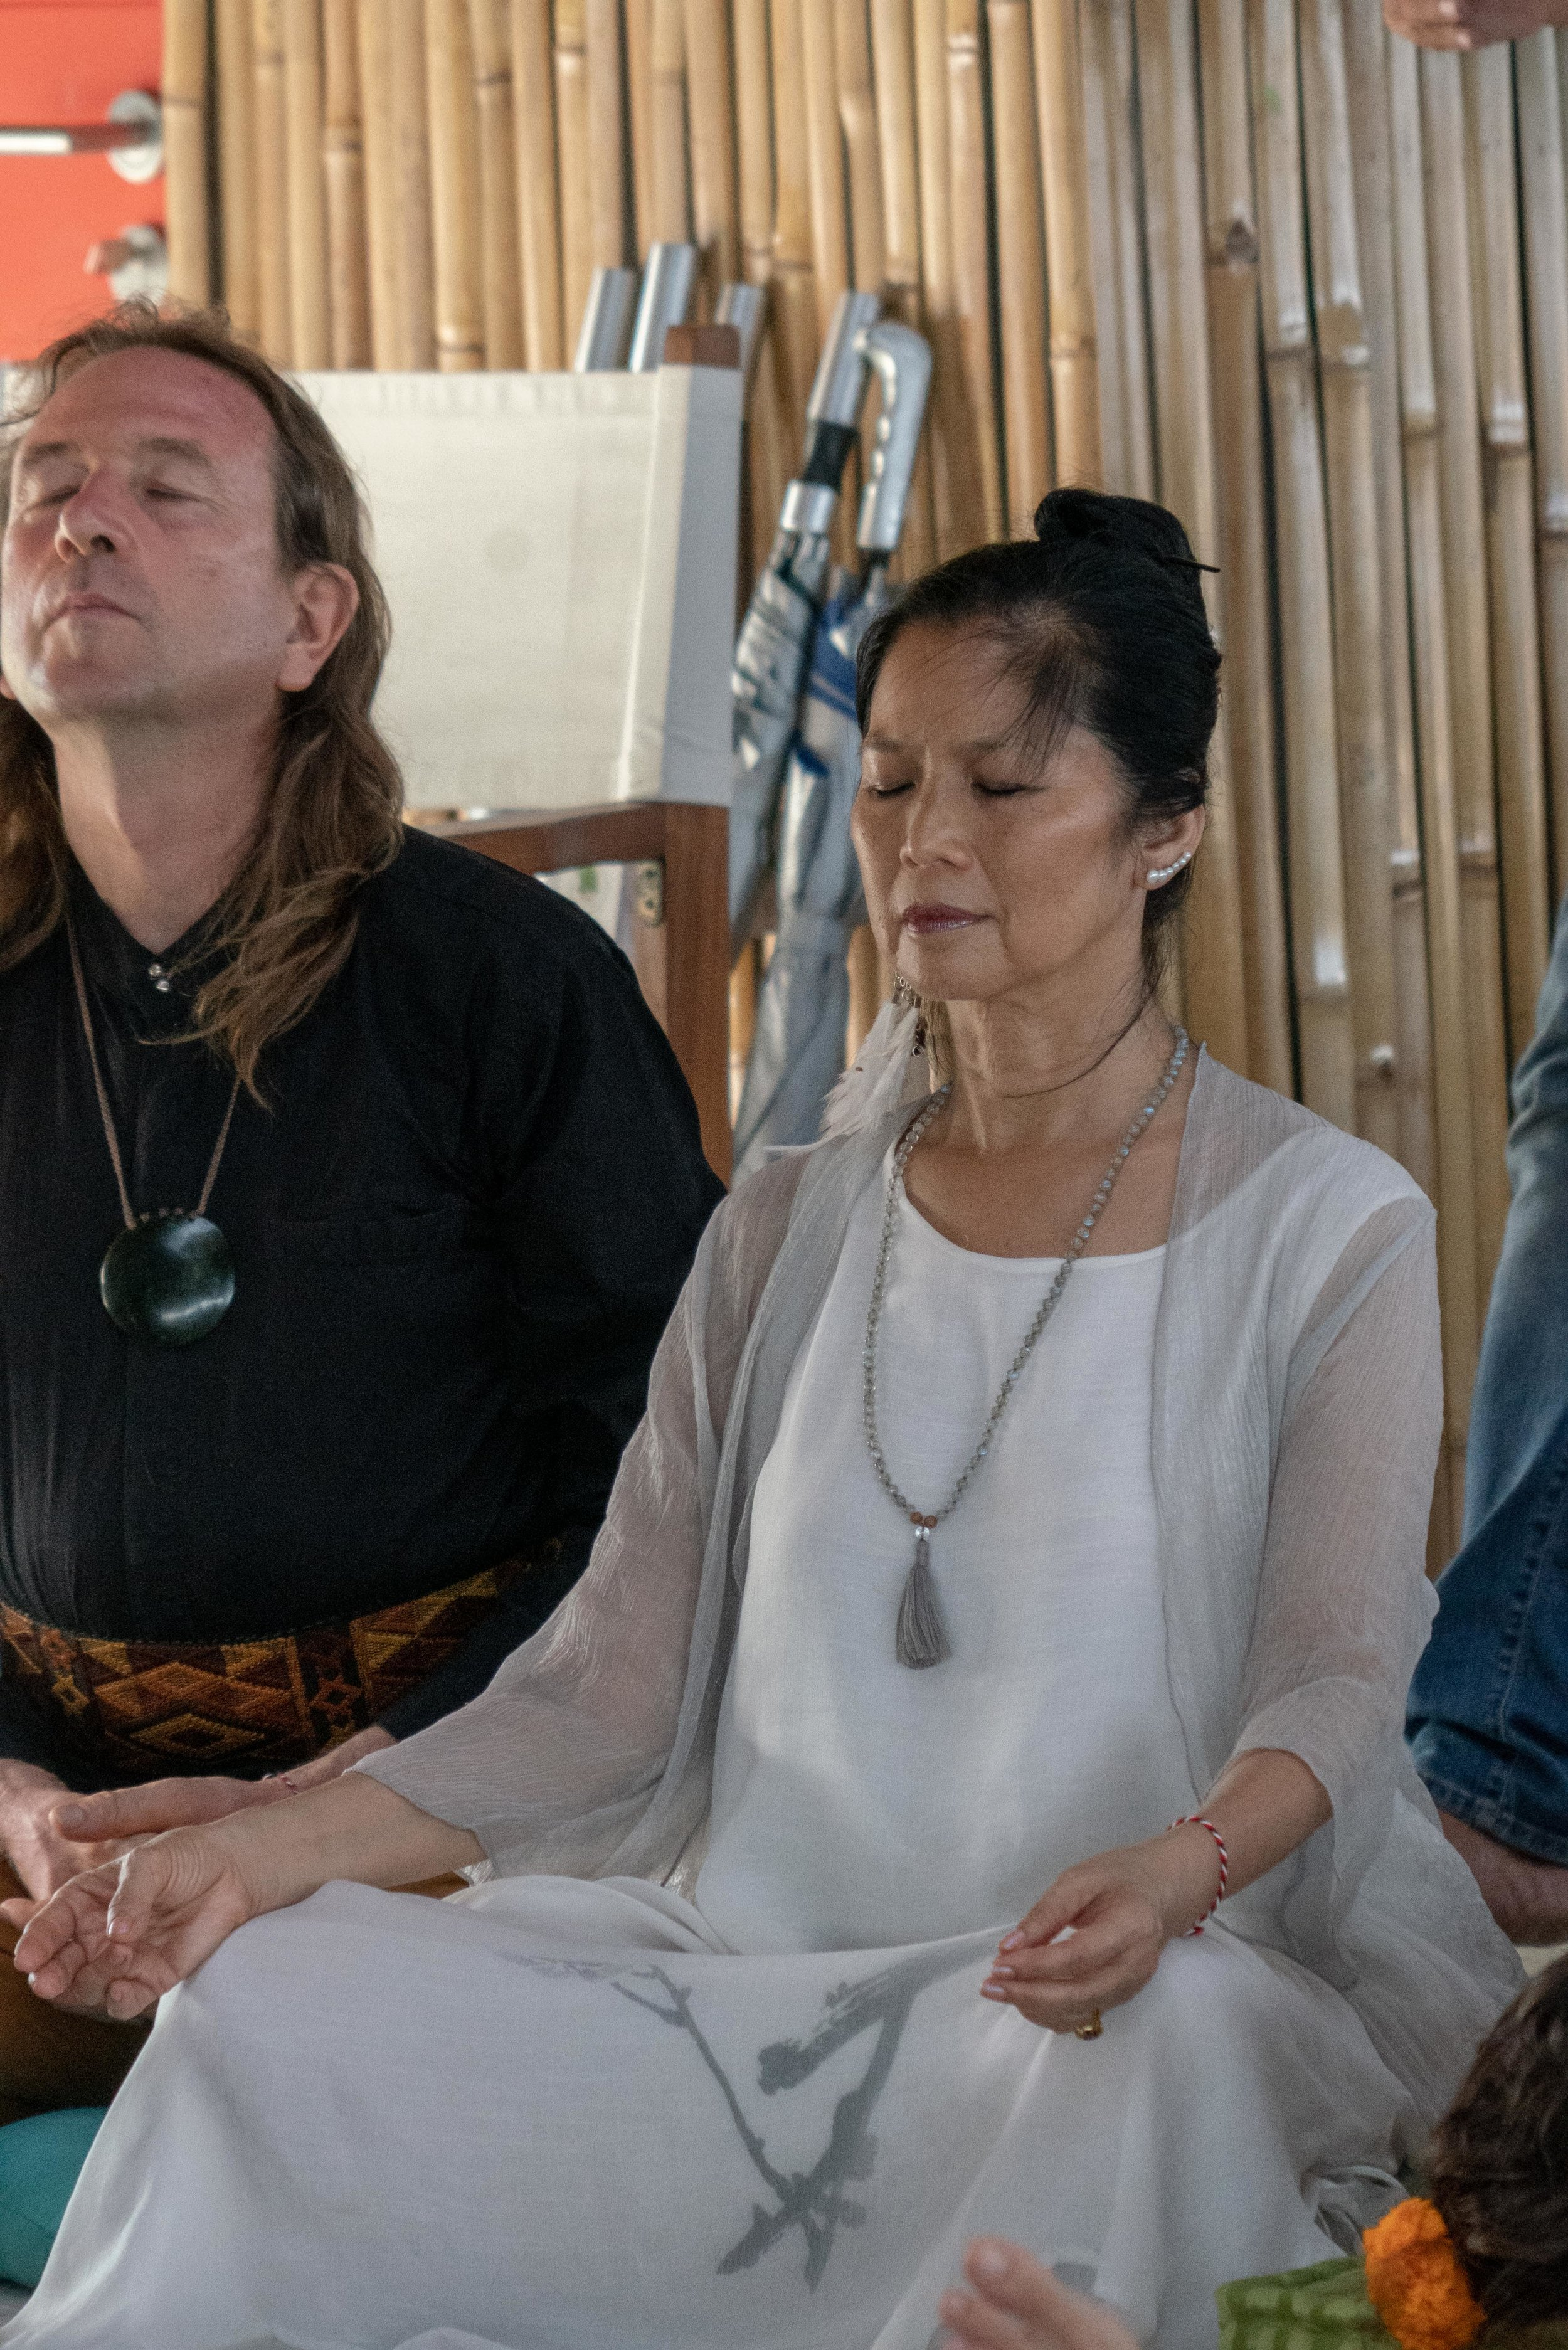 Ama Lia Wai Ching, Intuitive Healer & Space Activator(China)